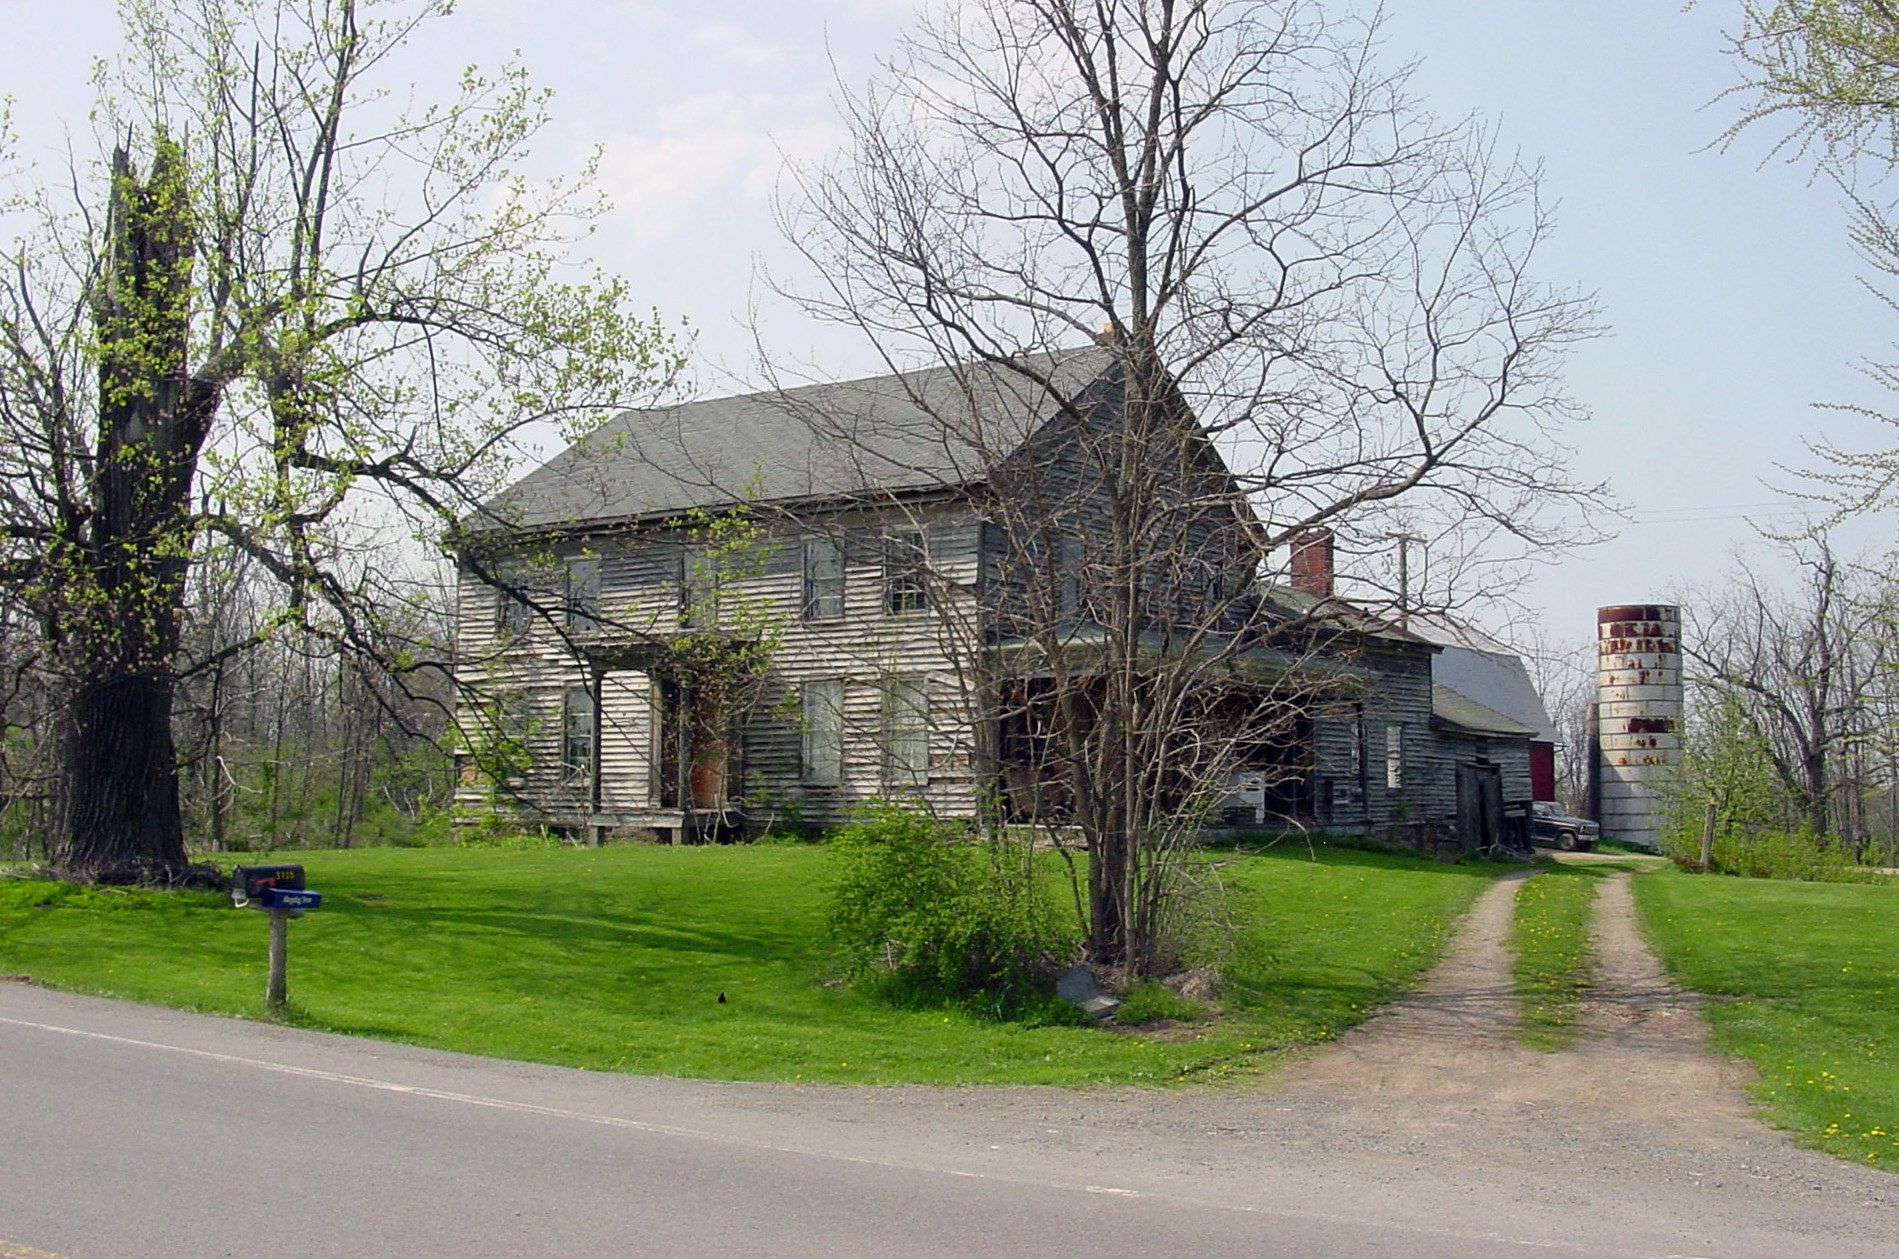 The Lemuel Durfee home in Palmyra, New York, which is no longer extant.